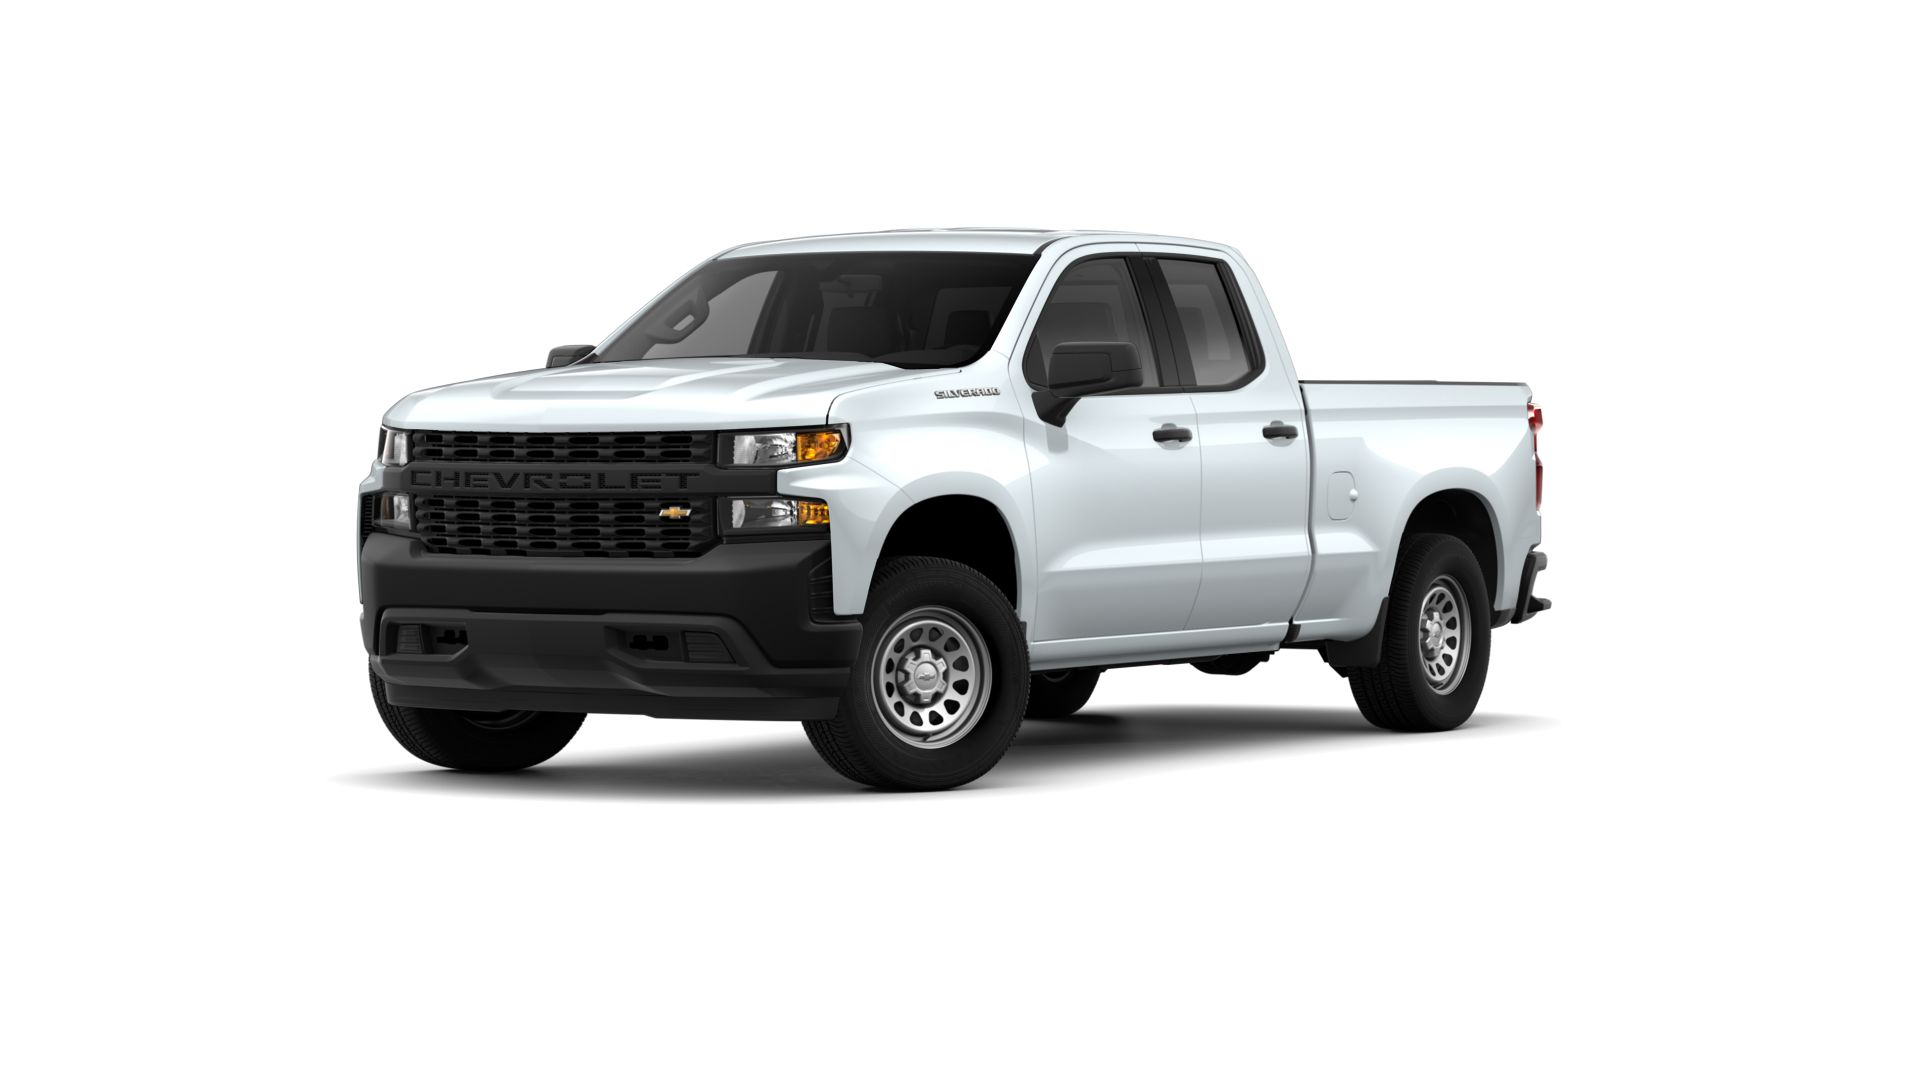 2019 chevrolet silverado 1500 sacramento. Black Bedroom Furniture Sets. Home Design Ideas